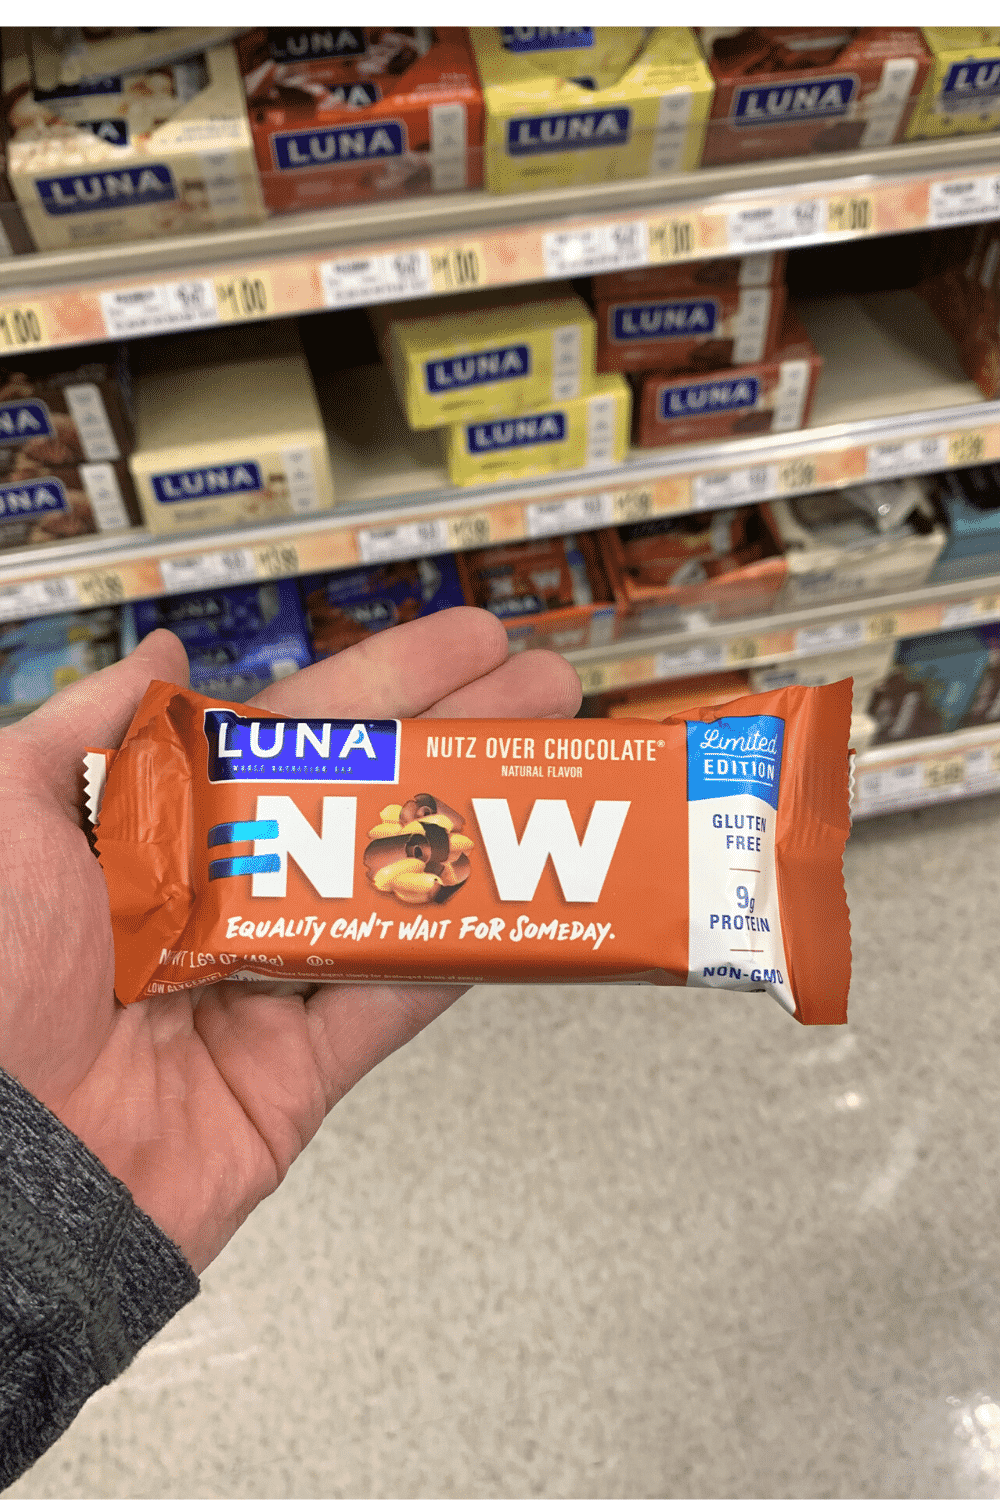 A hand holding a wrapped Luna nutz over chocolate flavored bar